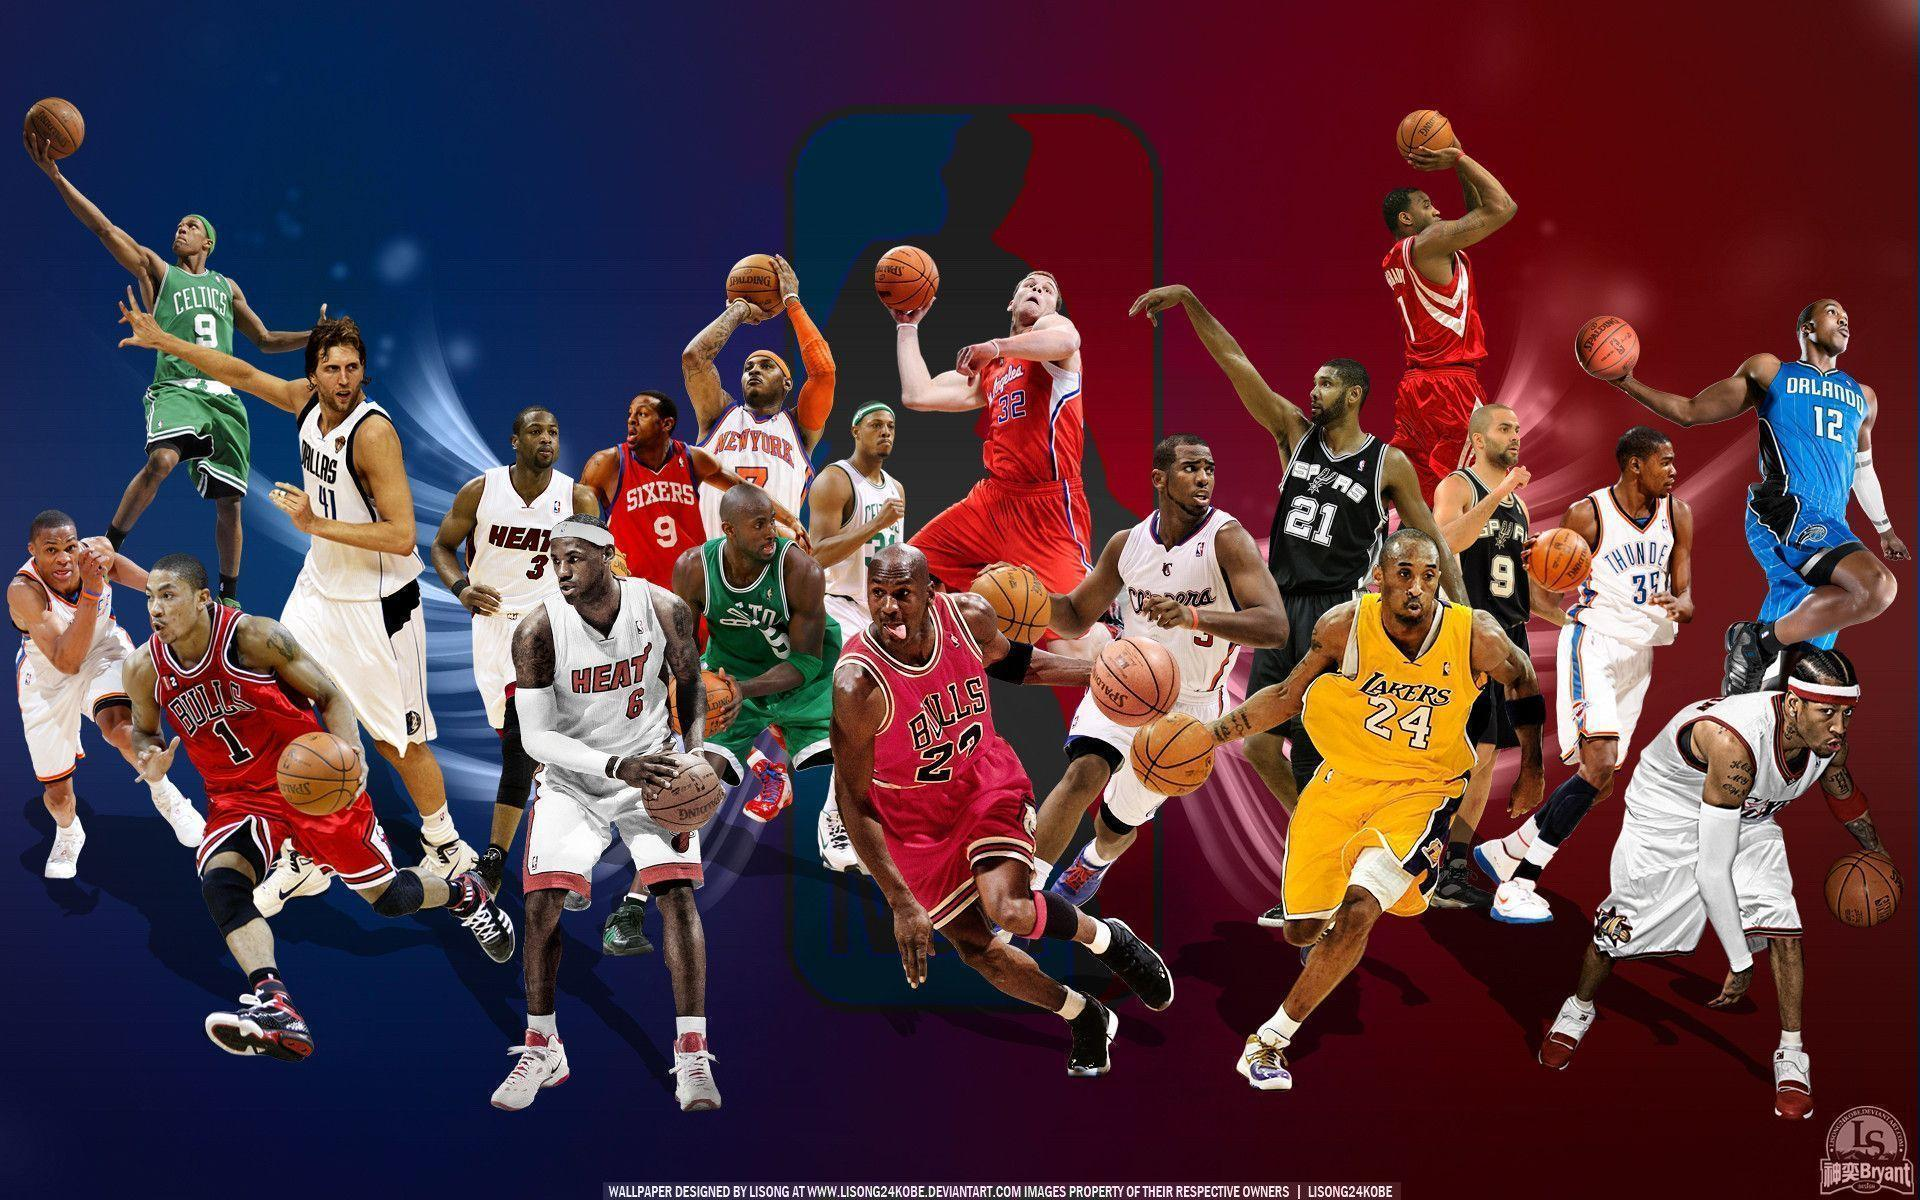 Nba Wallpapers - Full HD wallpaper search